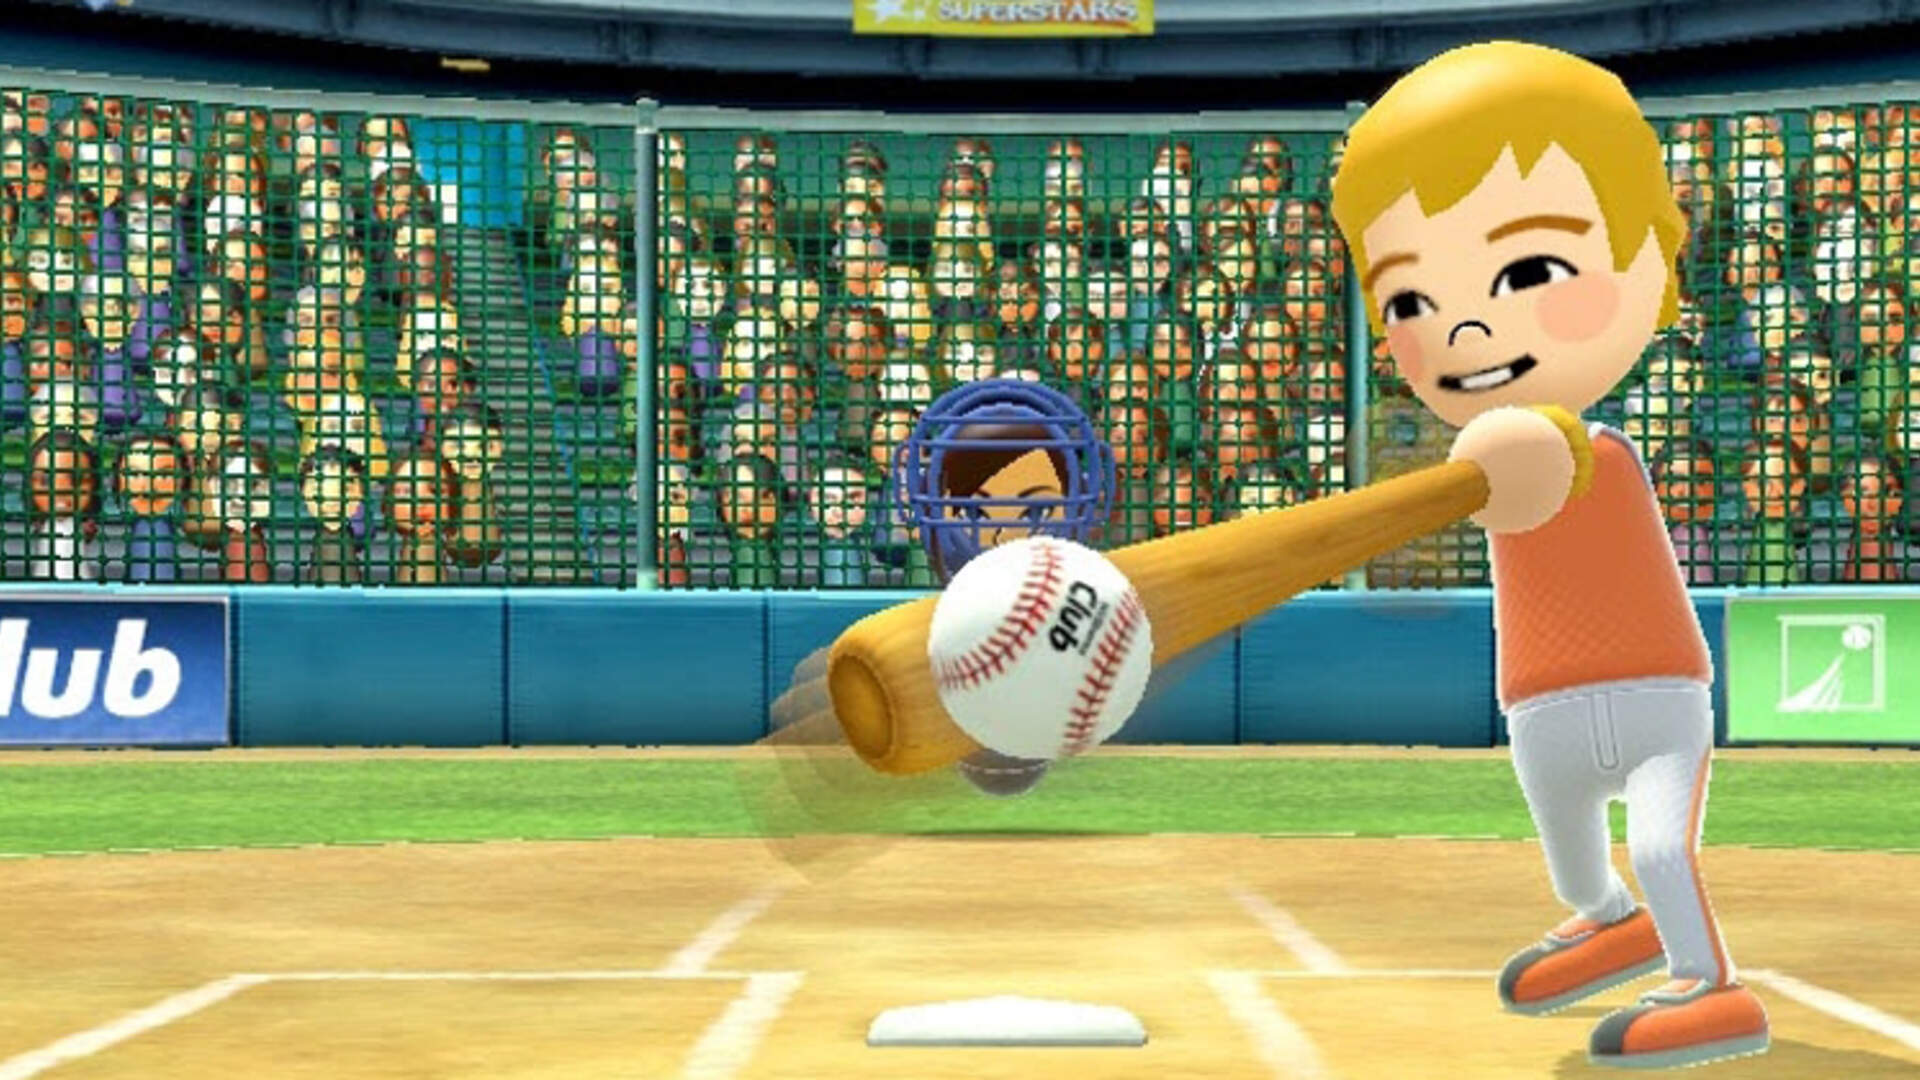 Wii Sports Club Wii U Review: Party Like it's 2006